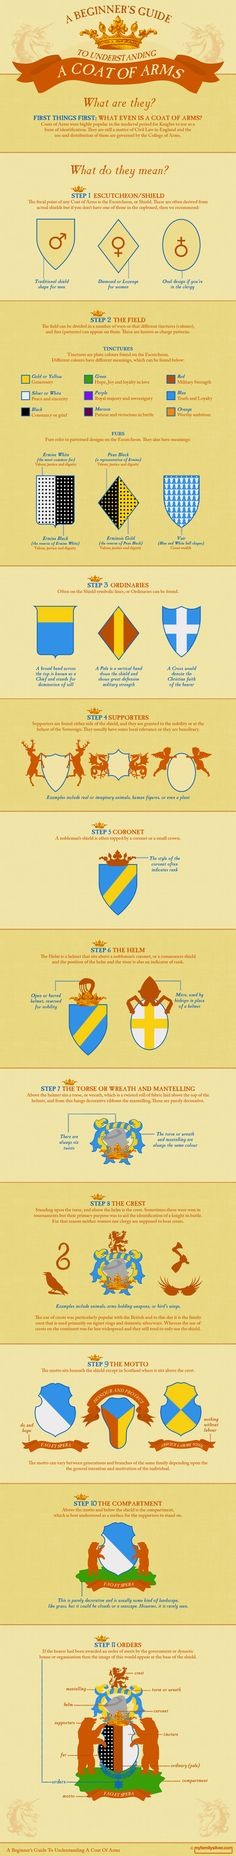 This is a visual guide to deciphering and understanding your family's coat of arms. It breaks down the elements and explains the variations and differ